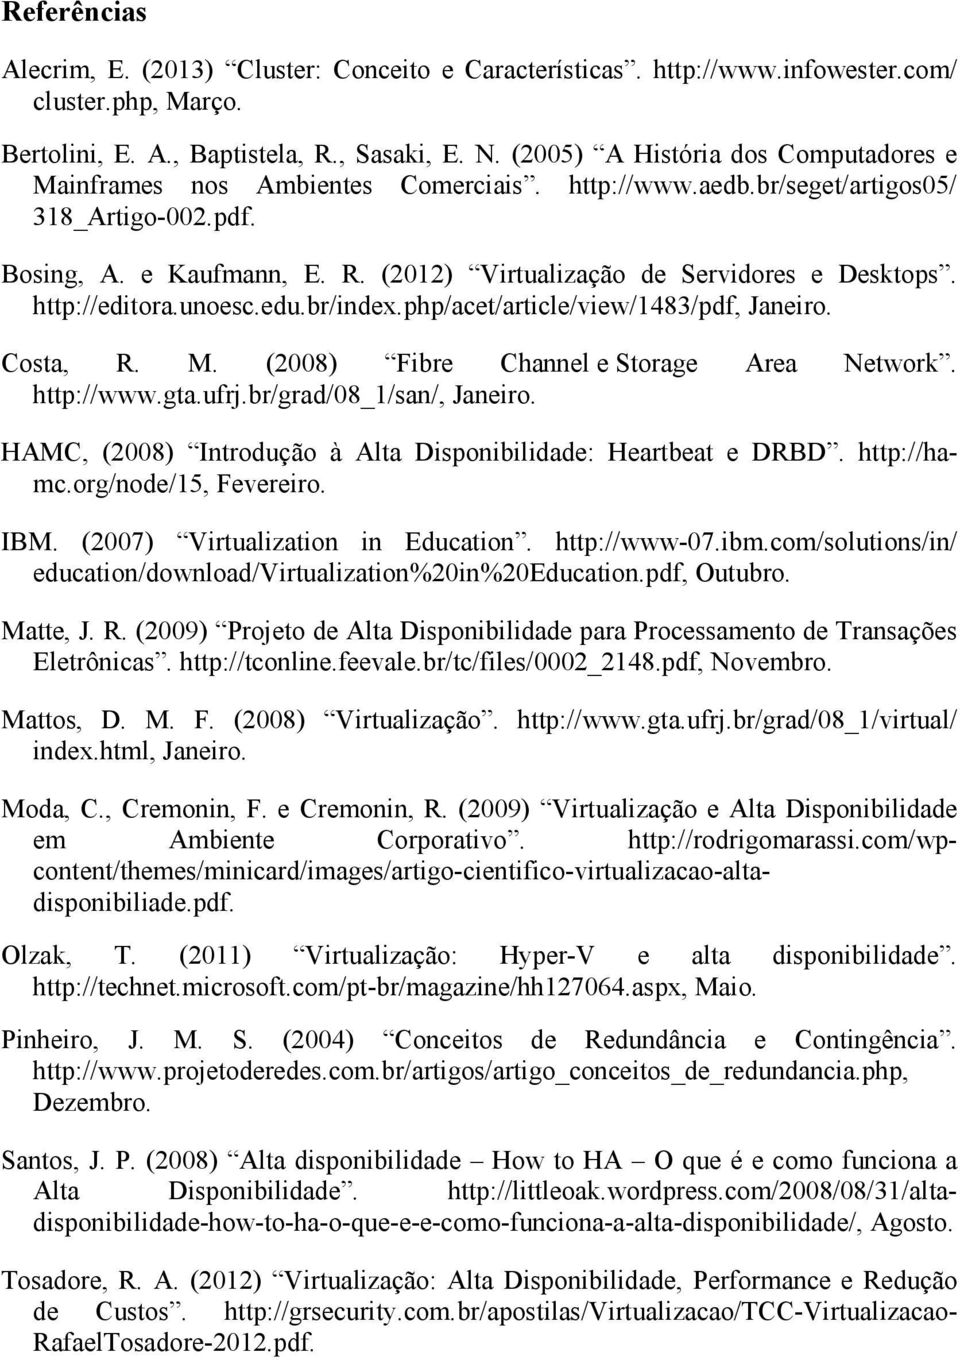 (2012) Virtualização de Servidores e Desktops. http://editora.unoesc.edu.br/index.php/acet/article/view/1483/pdf, Janeiro. Costa, R. M. (2008) Fibre Channel e Storage Area Network. http://www.gta.